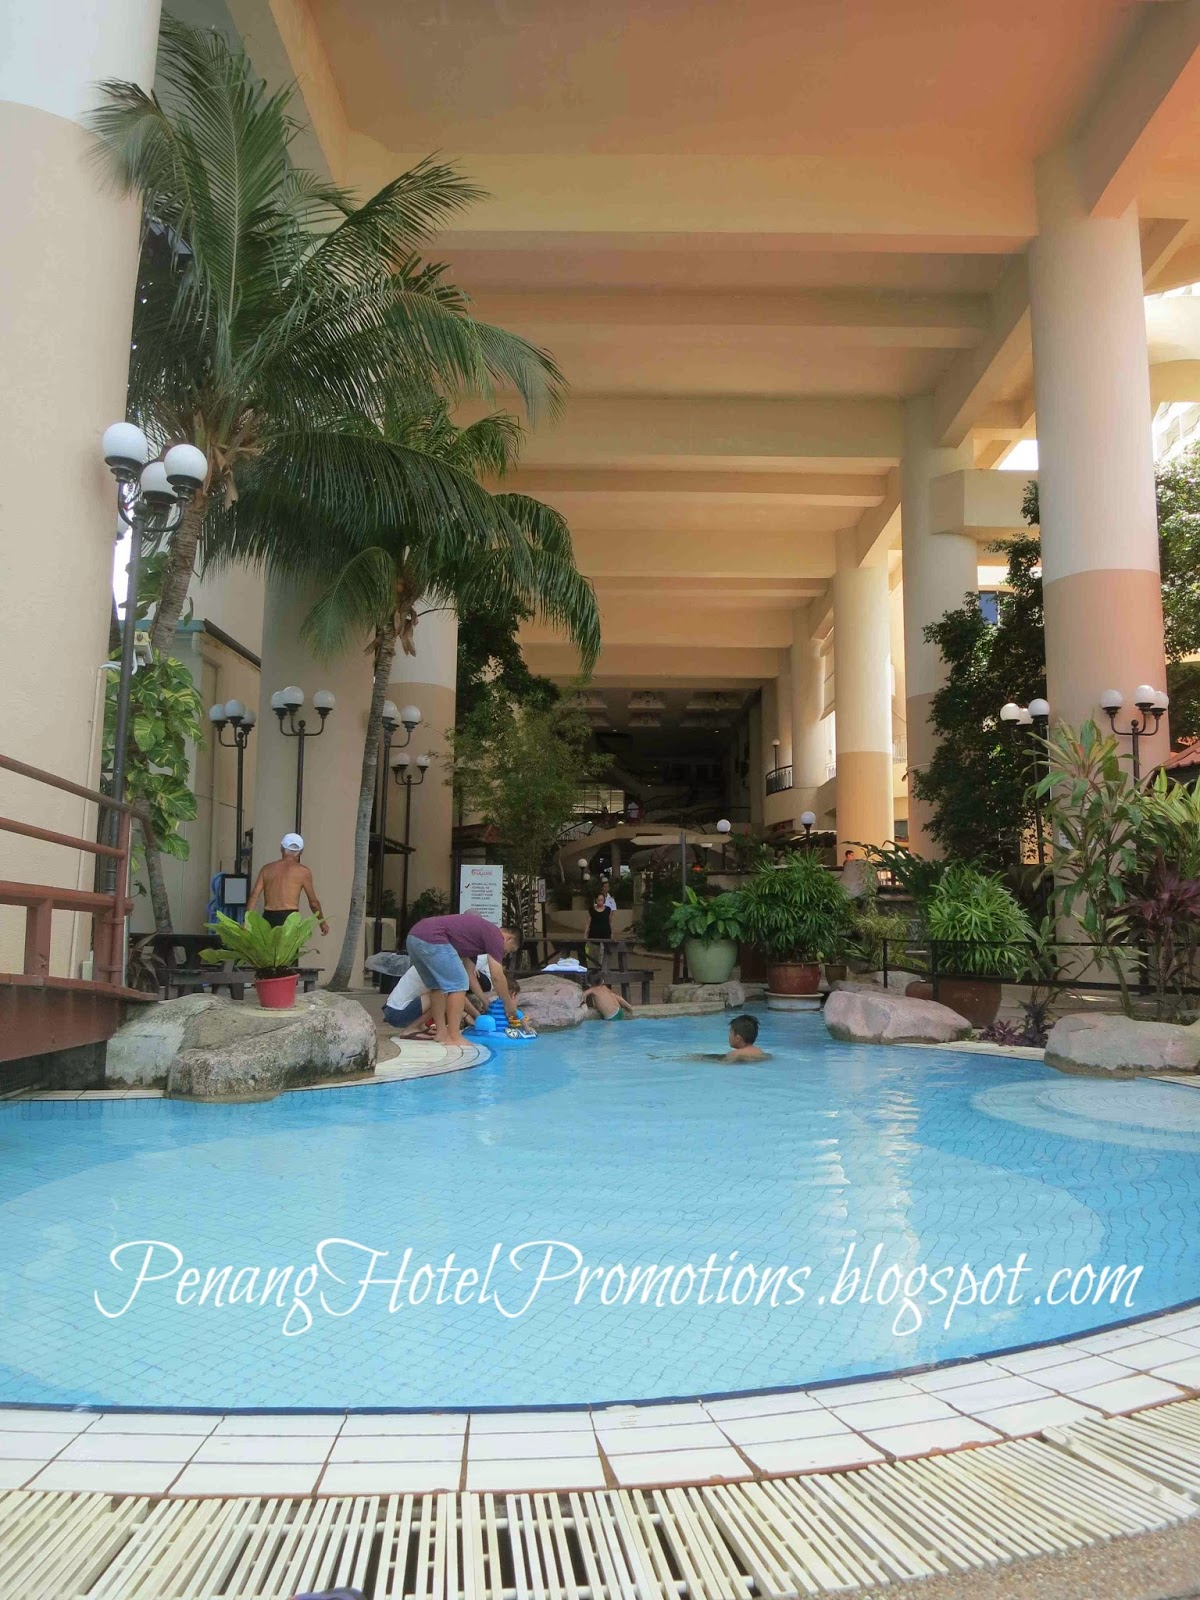 Penang hotel promotions rainbow paradise beach resort for Children s garden pools